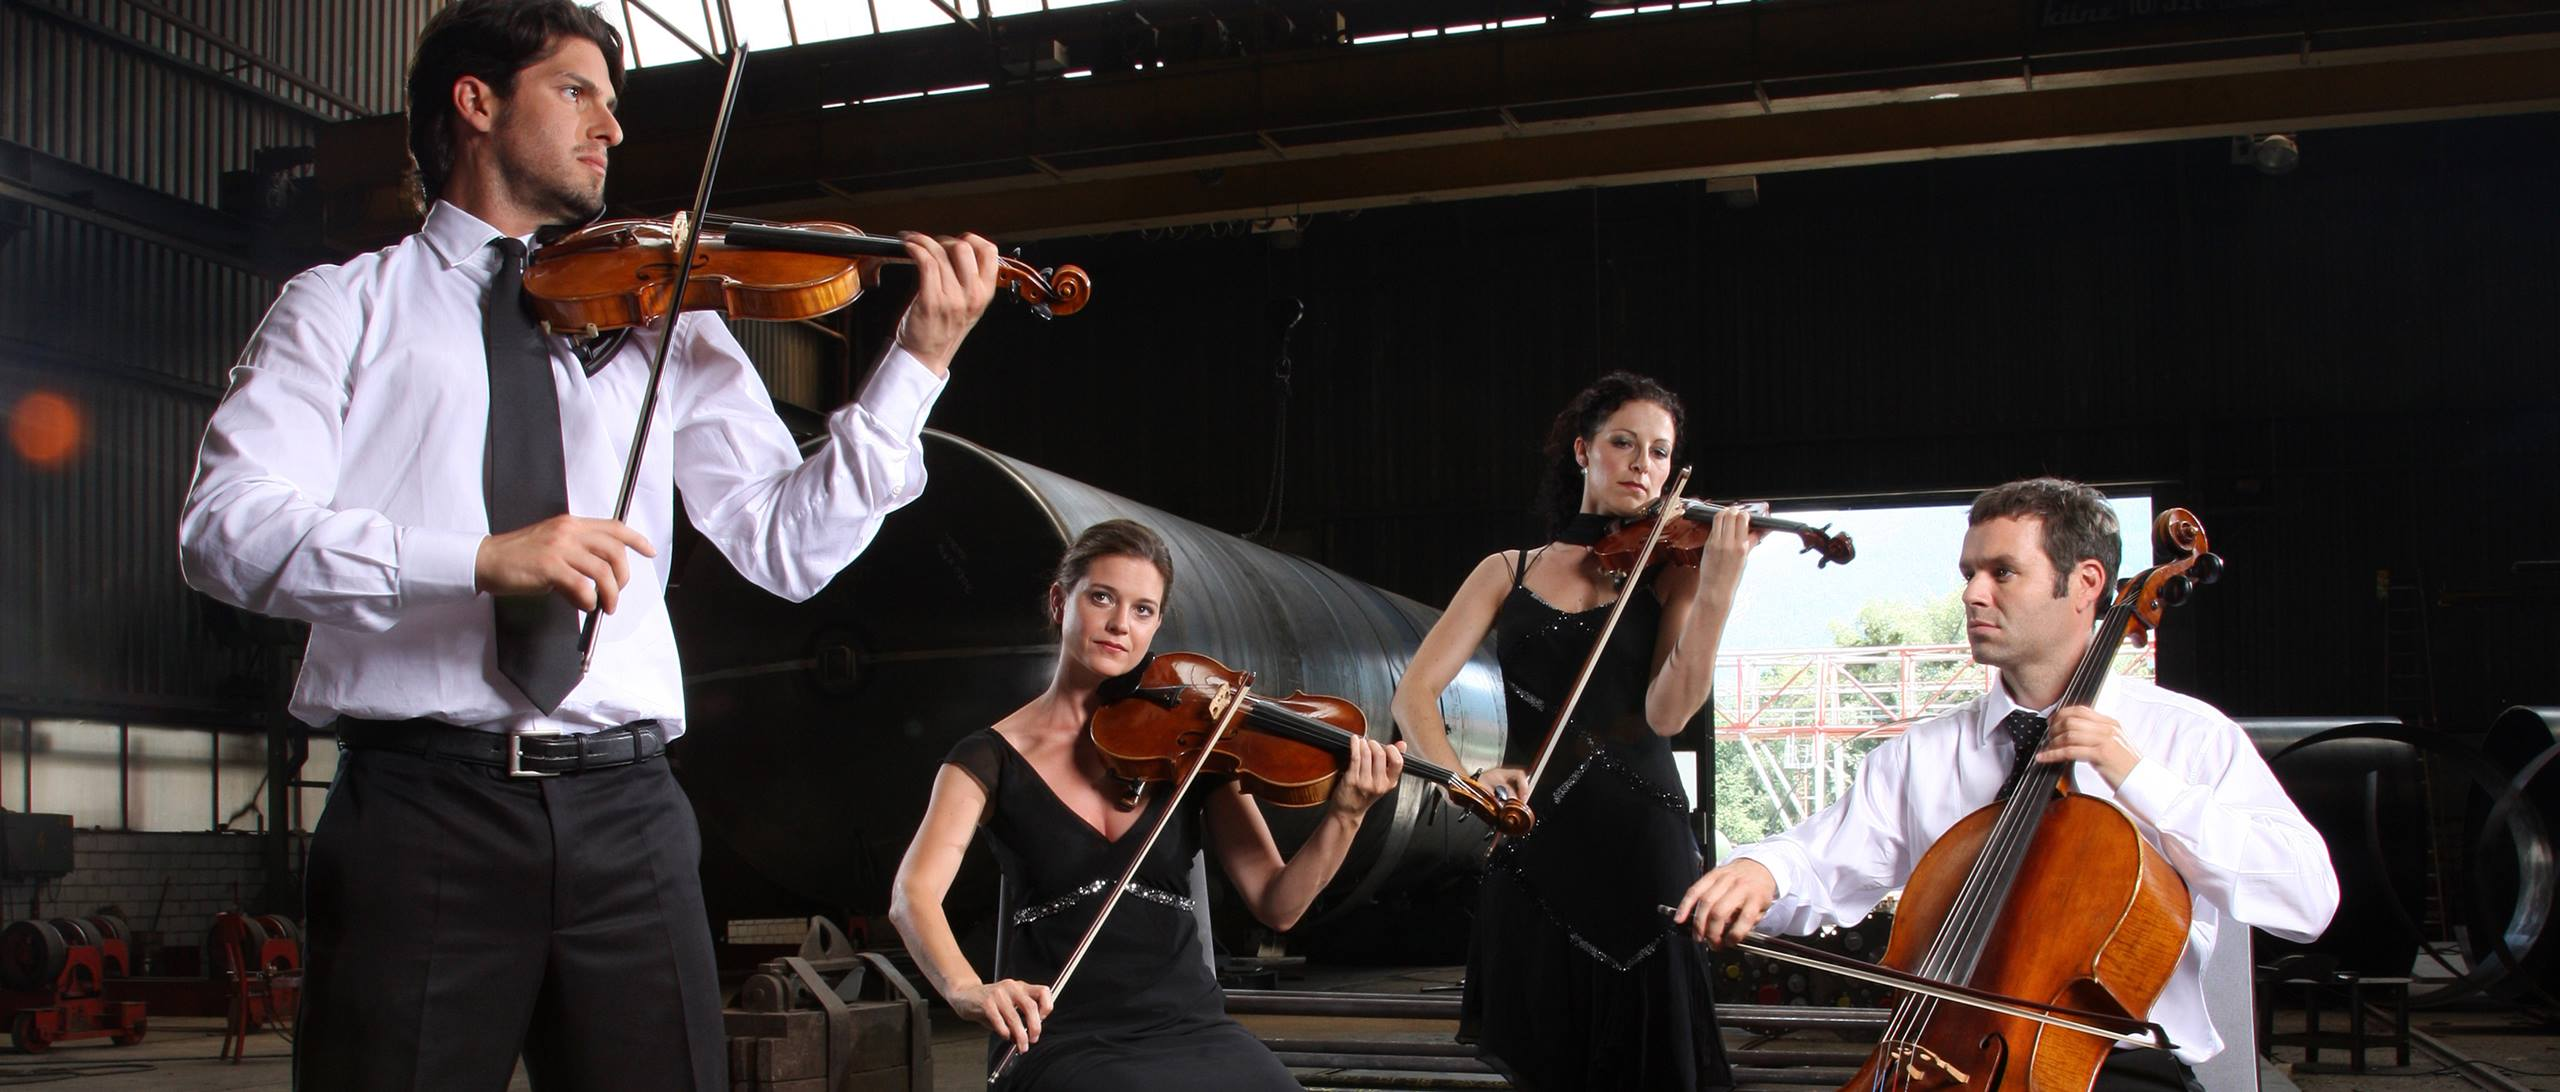 Four people playing violin and cello